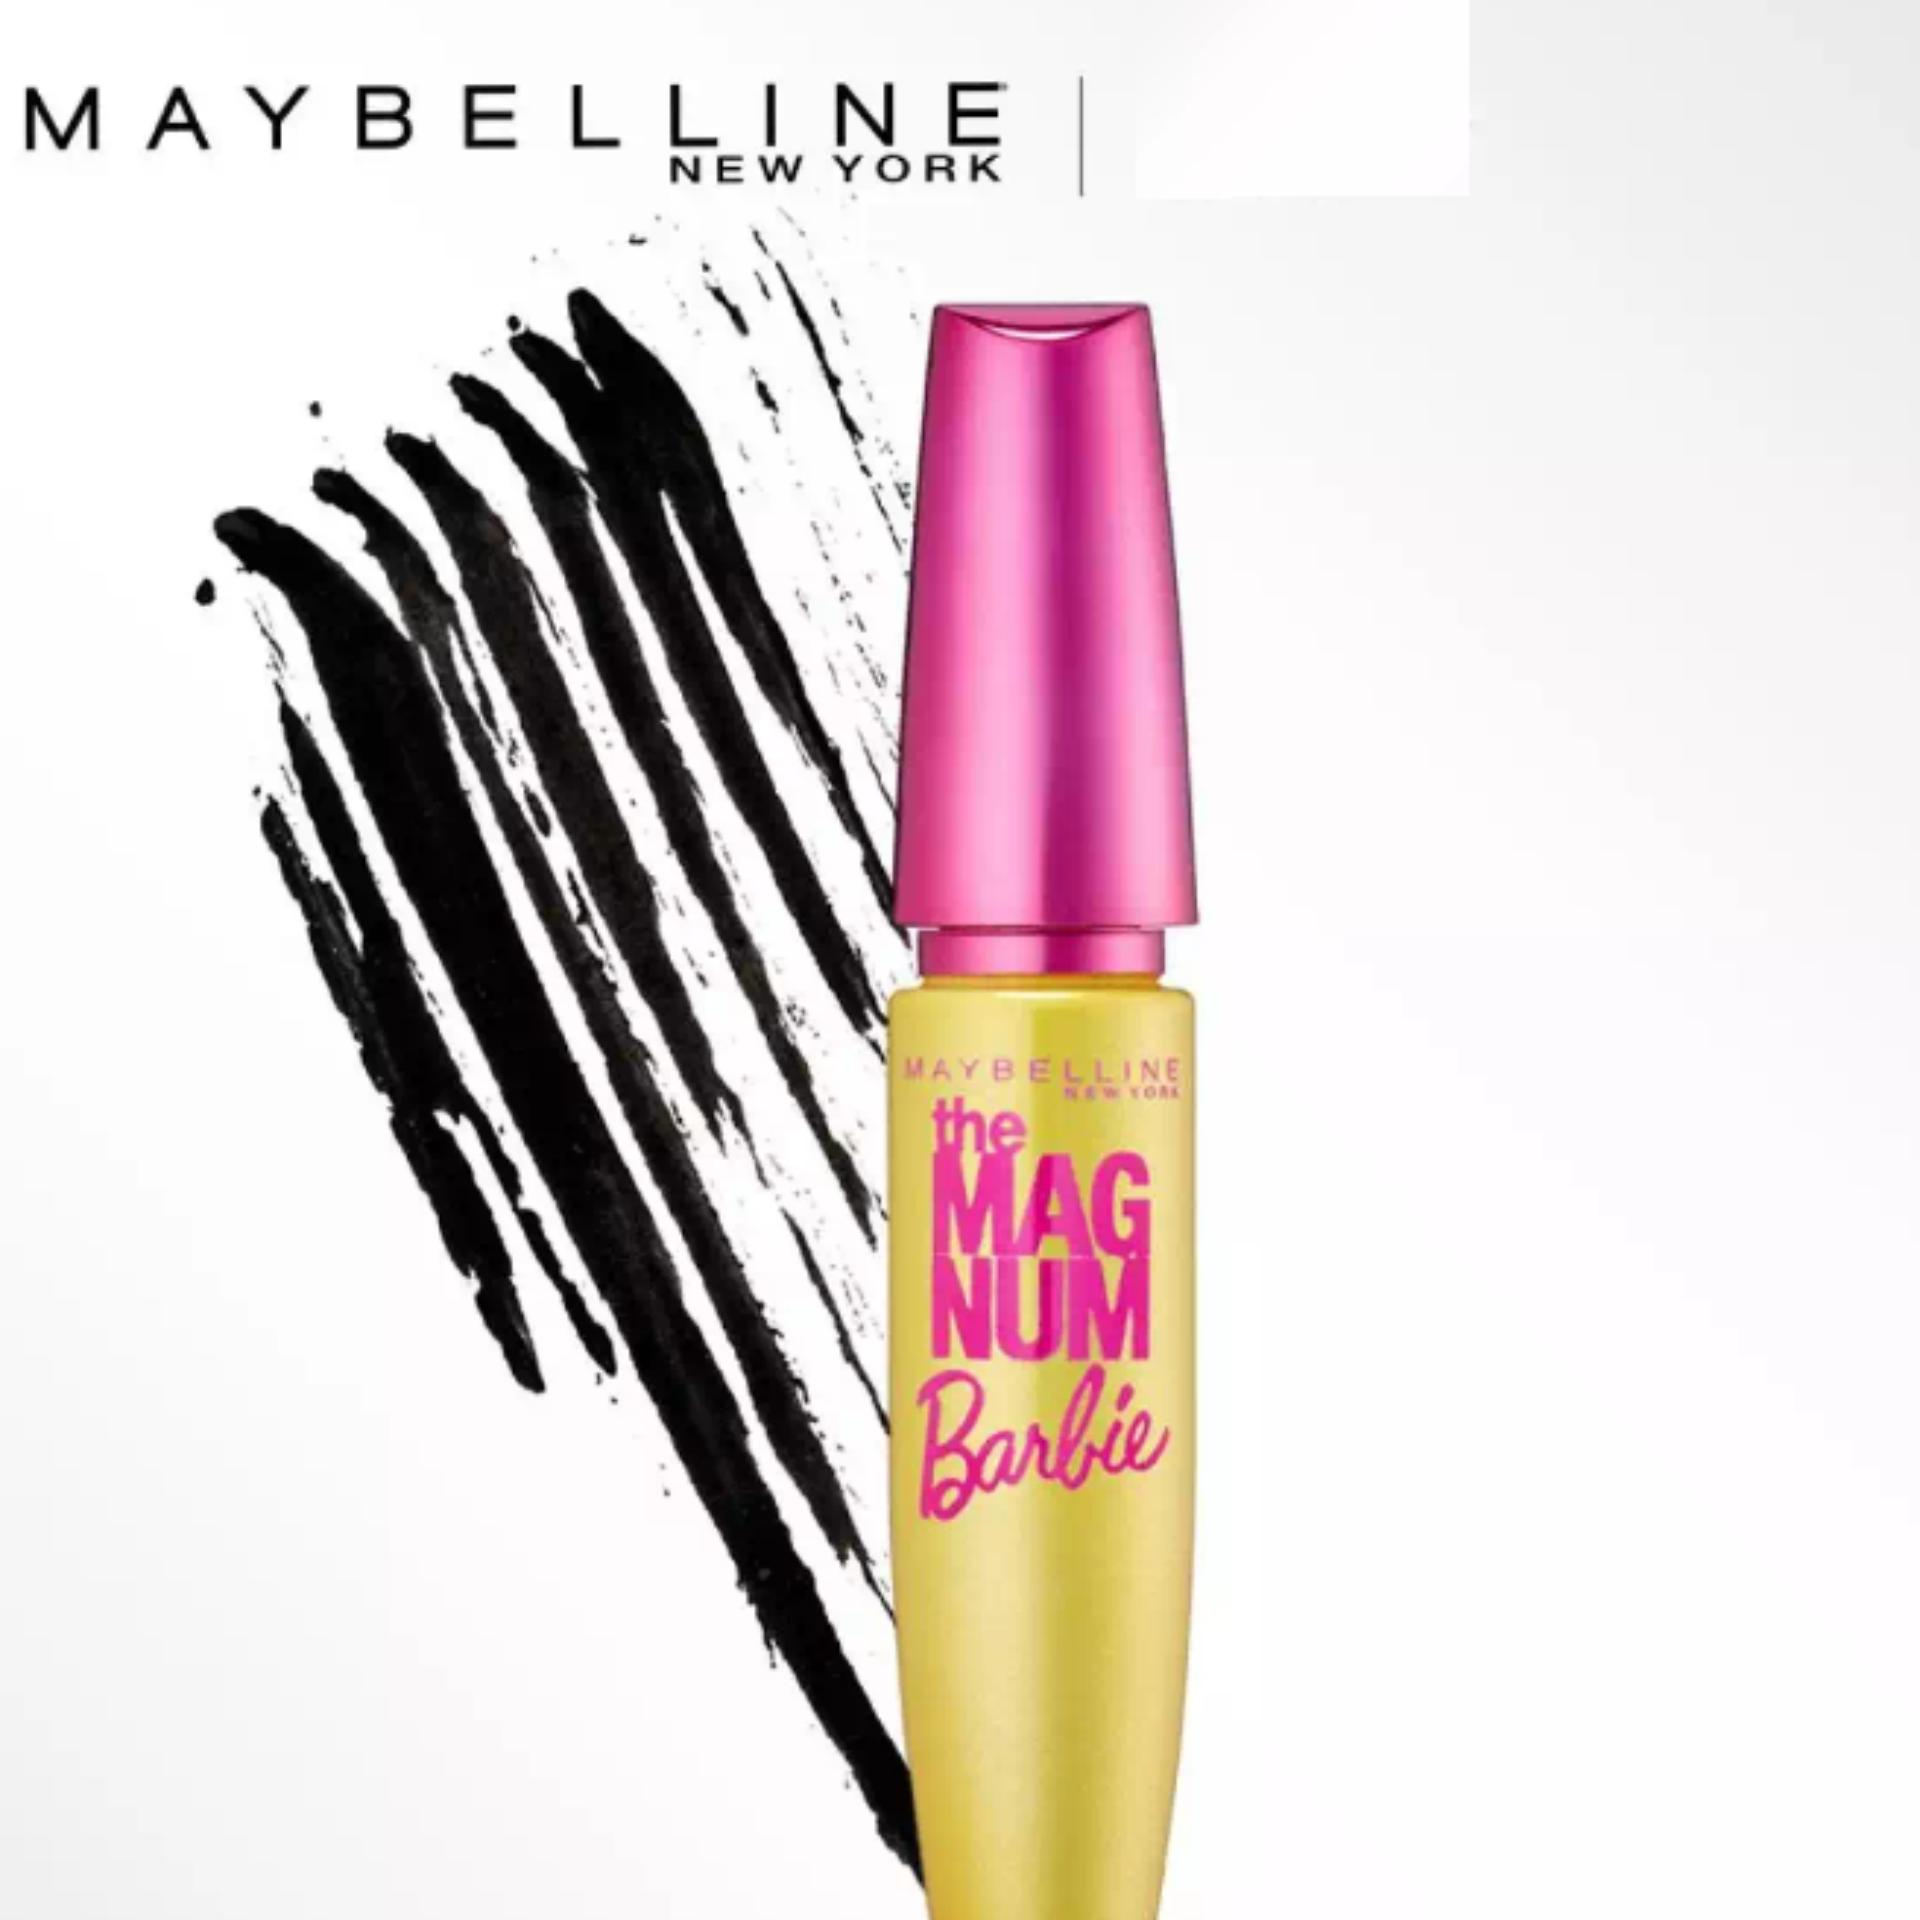 Maybelline Magnum Barbie Waterproof Mascara - Hitam